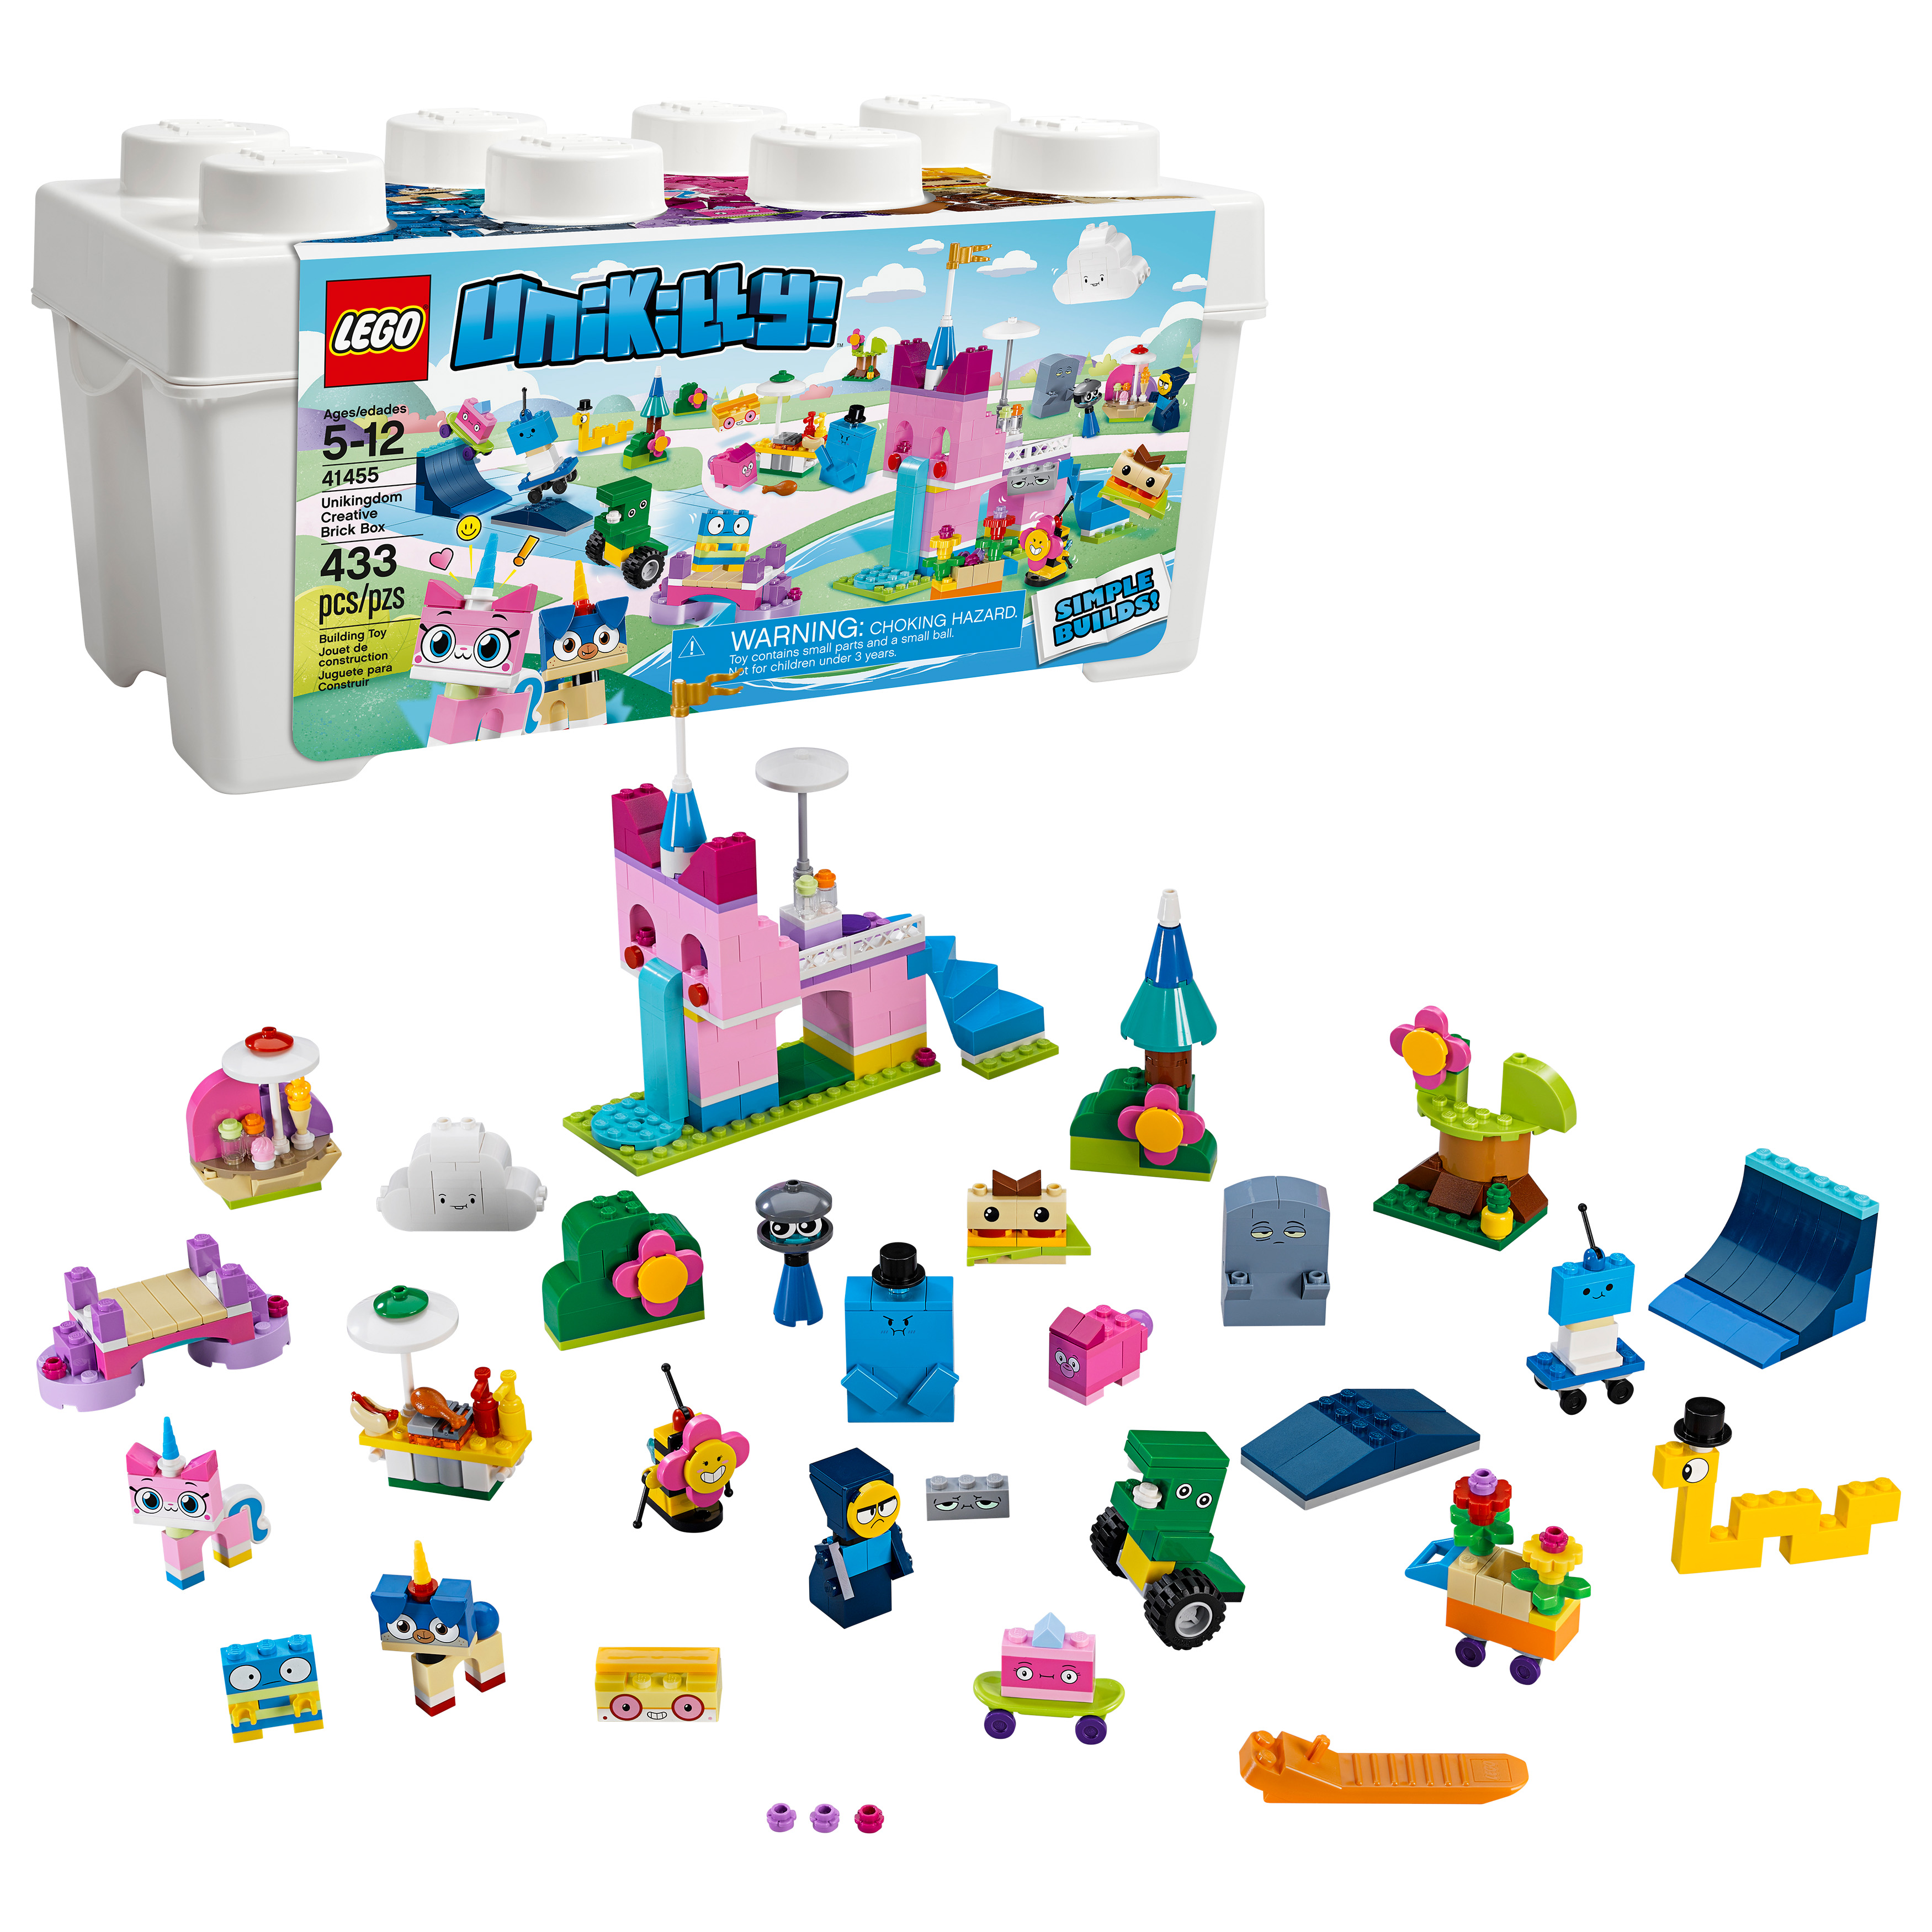 LEGO Unikitty Unikingdom Creative Brick Box 41455